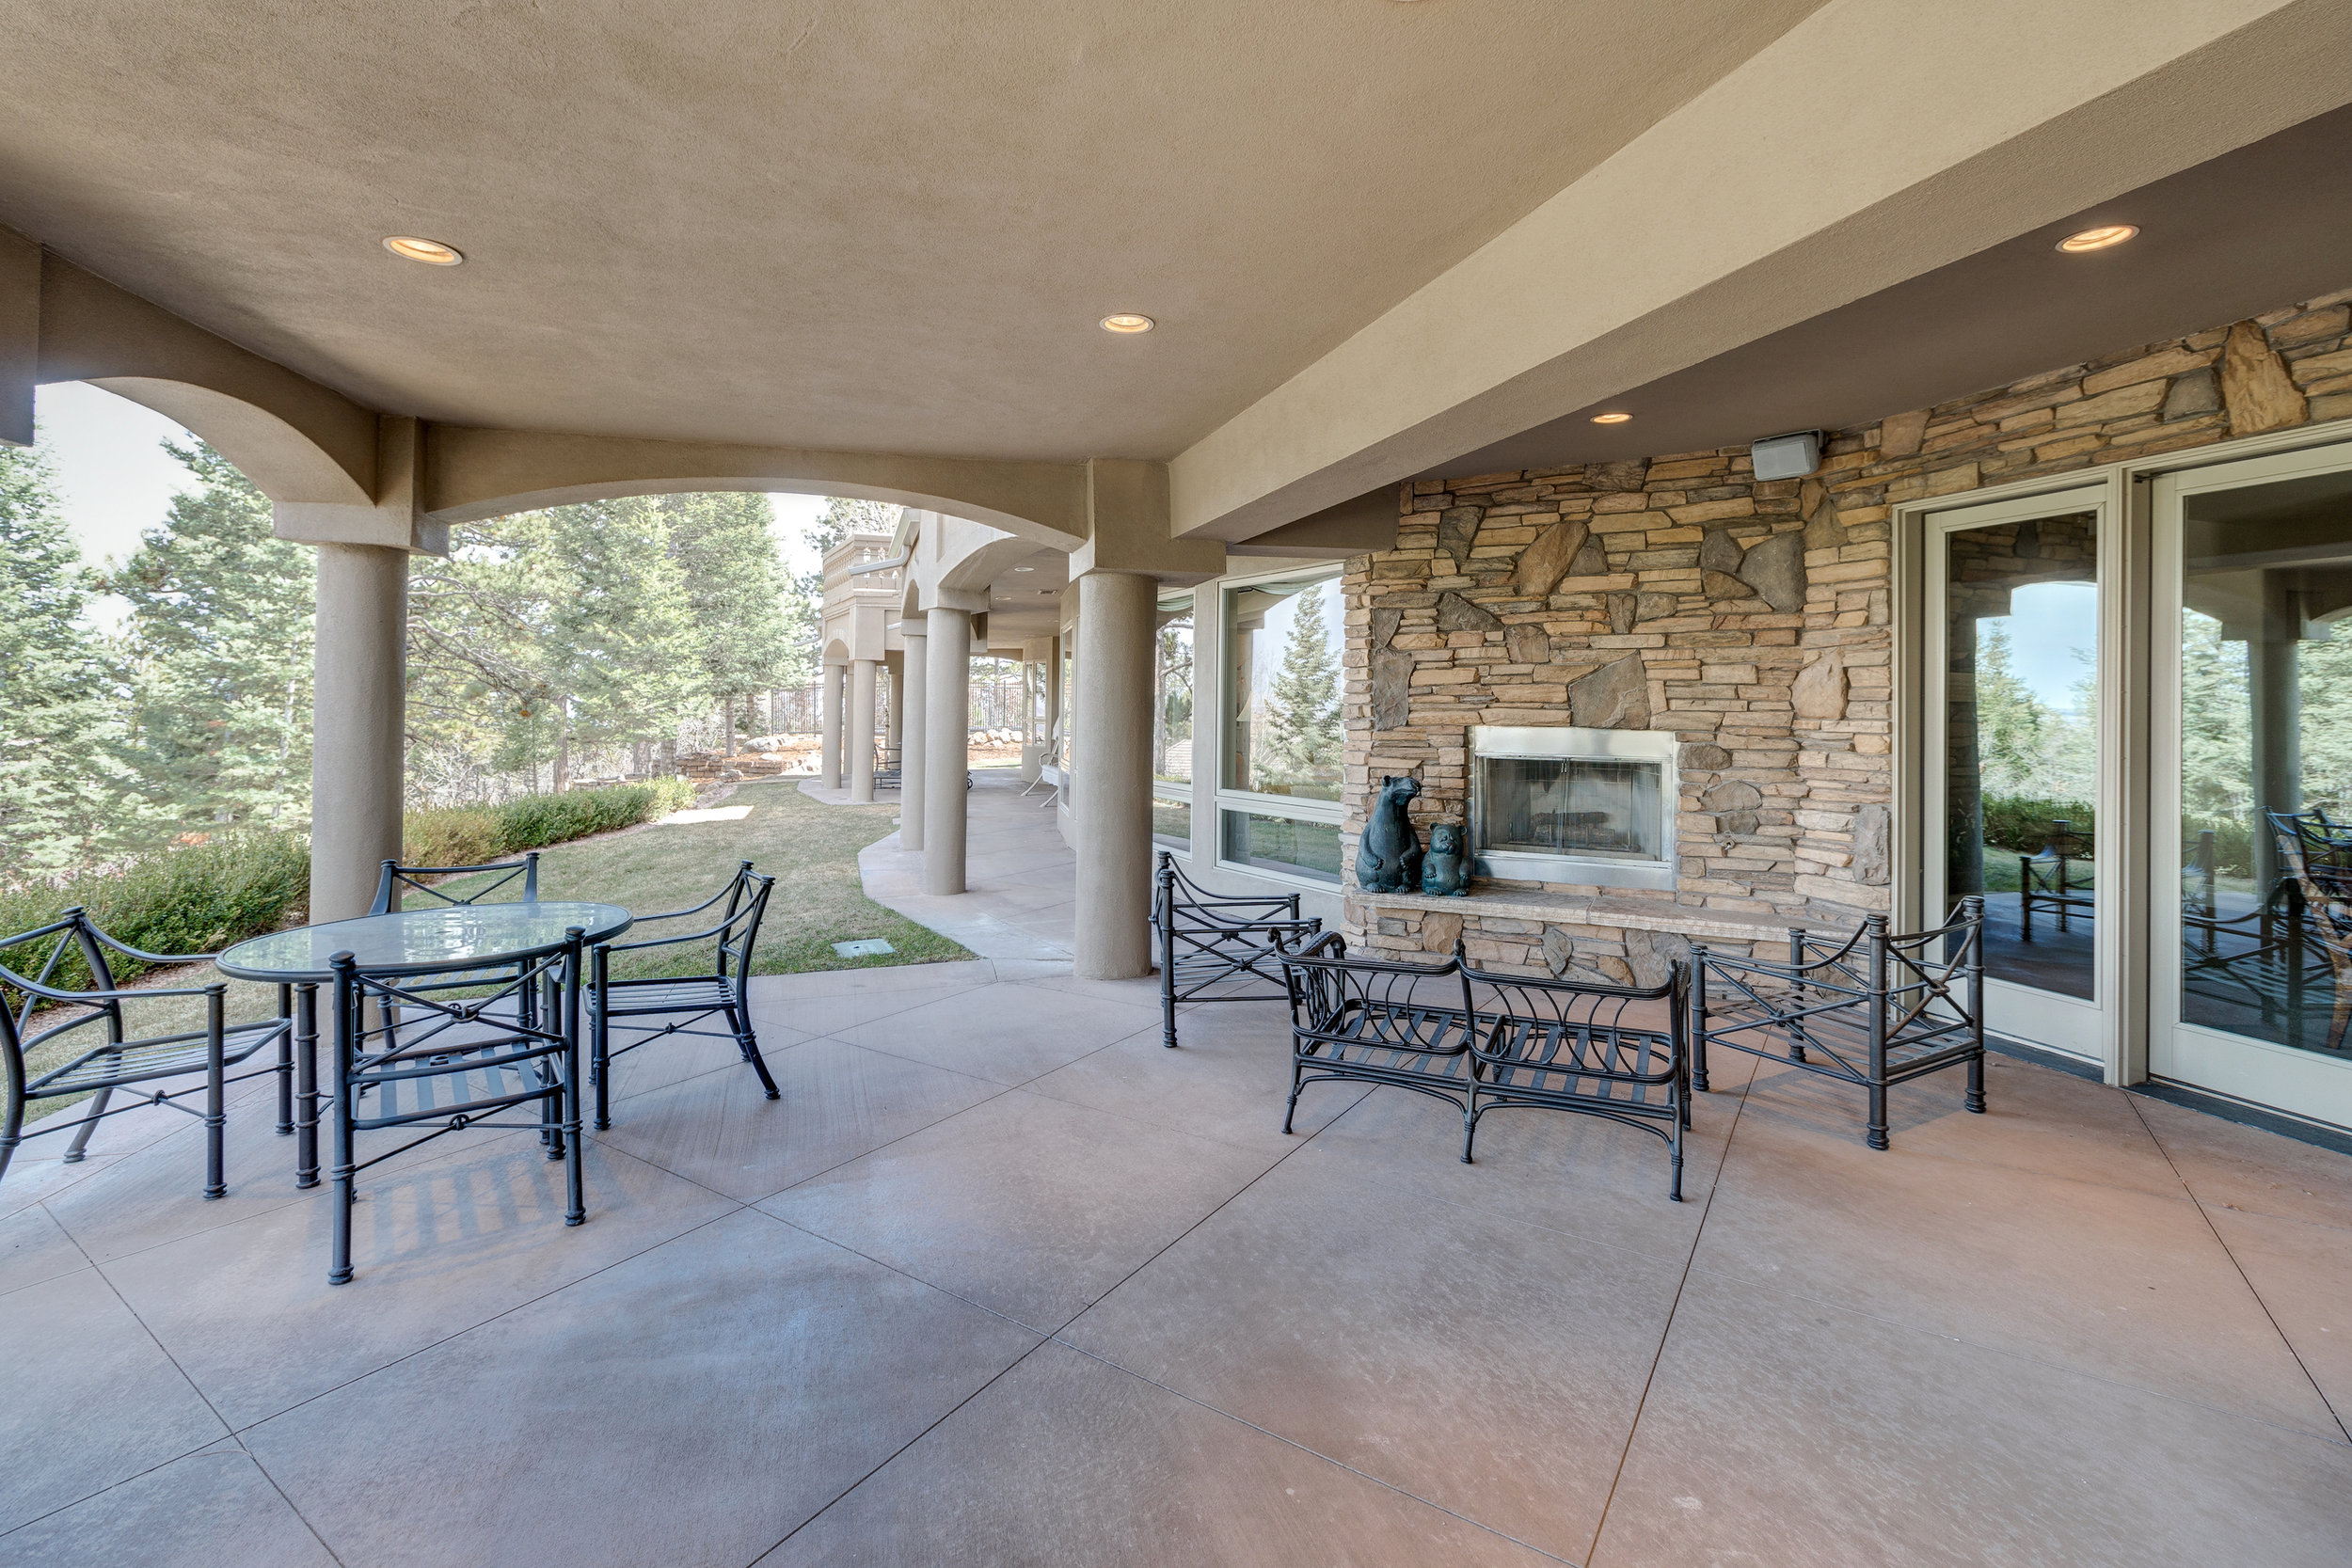 31-Lower level patio with fireplace.jpg